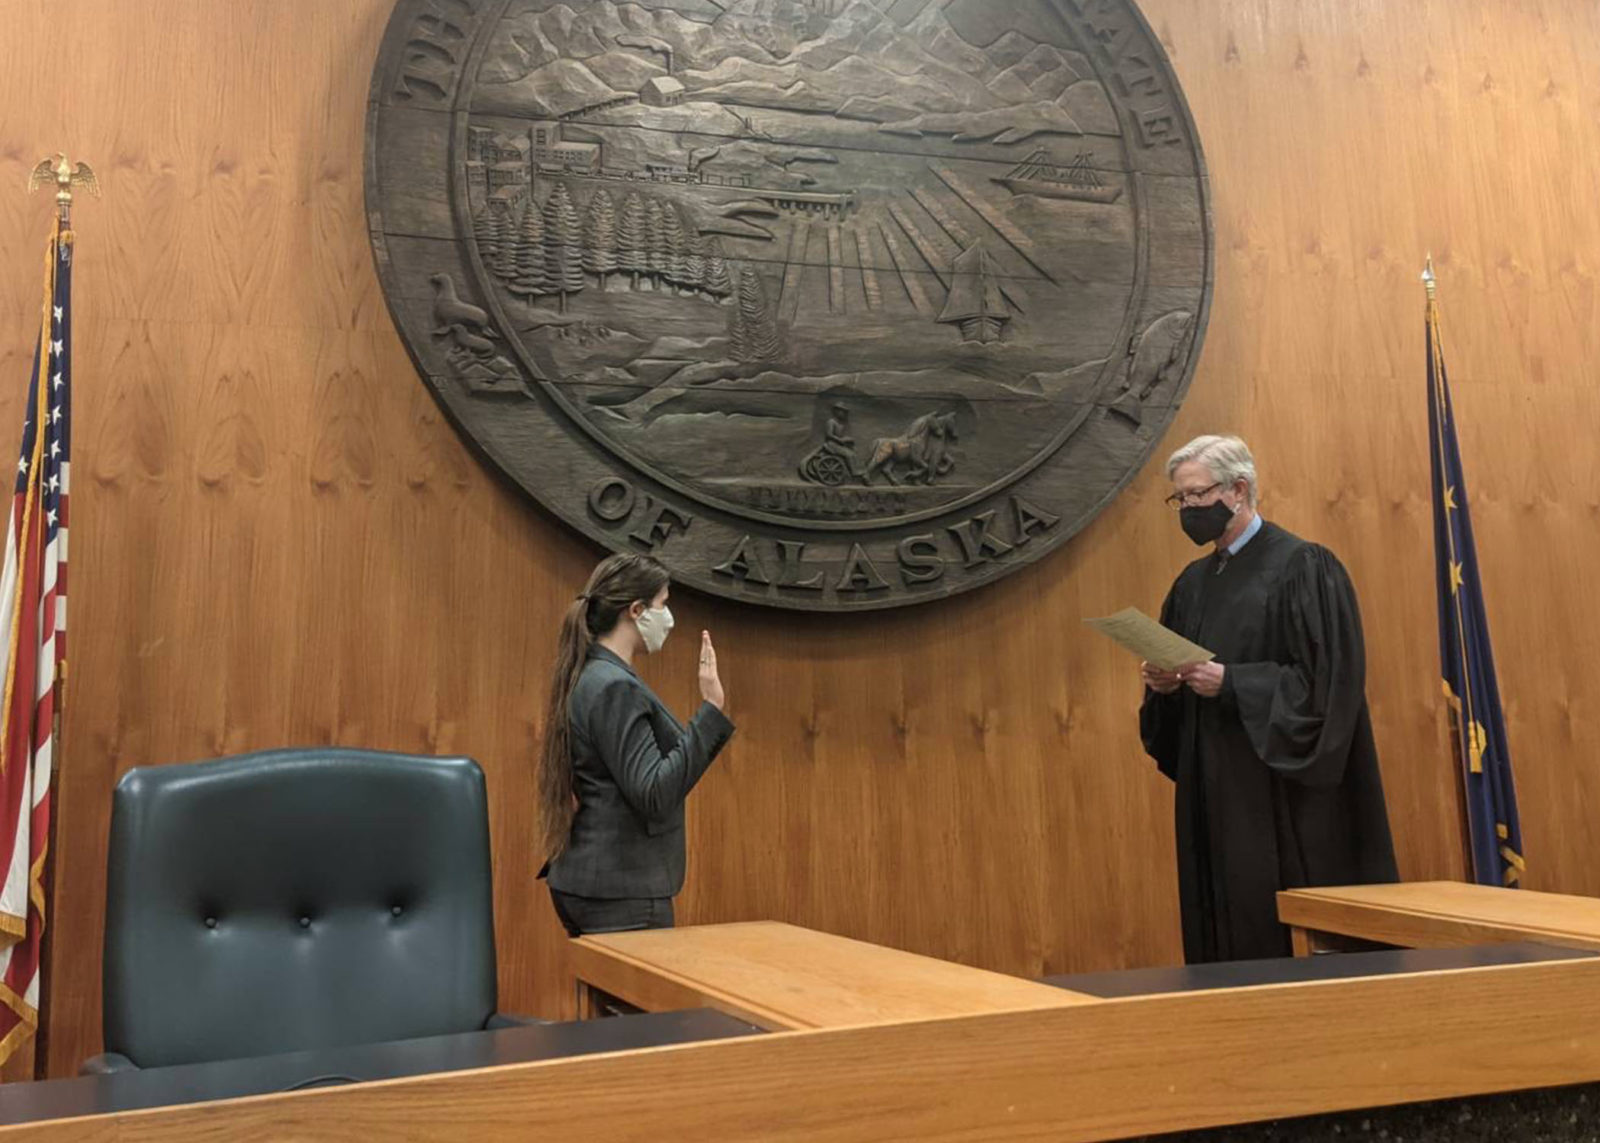 Rachel started as a legal fellow and then became a staff attorney. Here she is Rachel being sworn into the Alaska bar in March 2021 while in the courtroom.